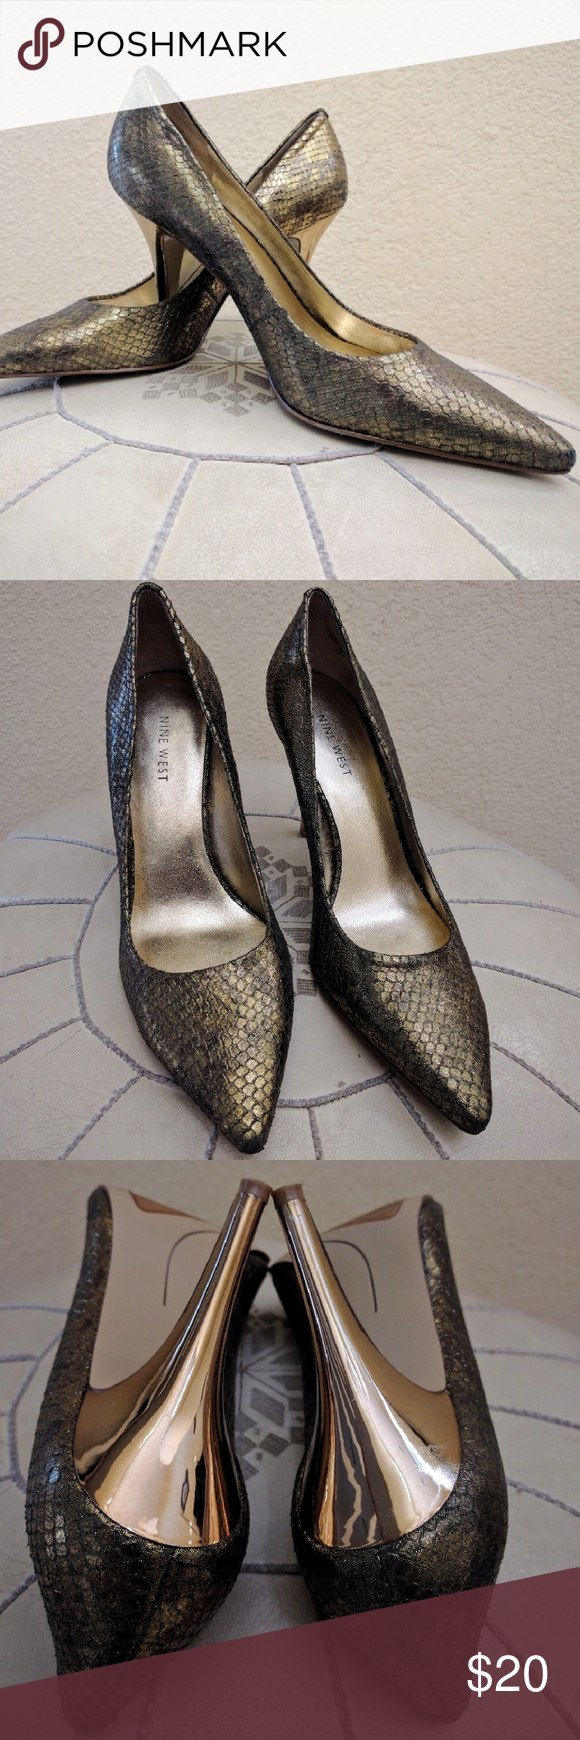 Nine west gold snakeskin pumps Size 7.5 Beautiful size 7.5 gold snake skin heels from Nine West.? These look great with dresses and boyfriend jeans! Toes show some wear but otherwise in good condition. Nine West Shoes Heels